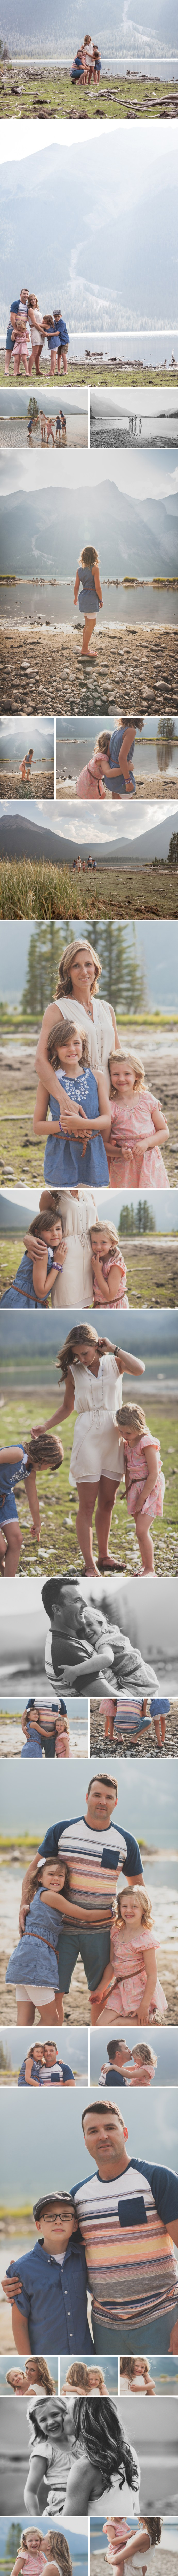 rocky mountains family photography | ©The Paper Deer Photography | thepaperdeer.ca